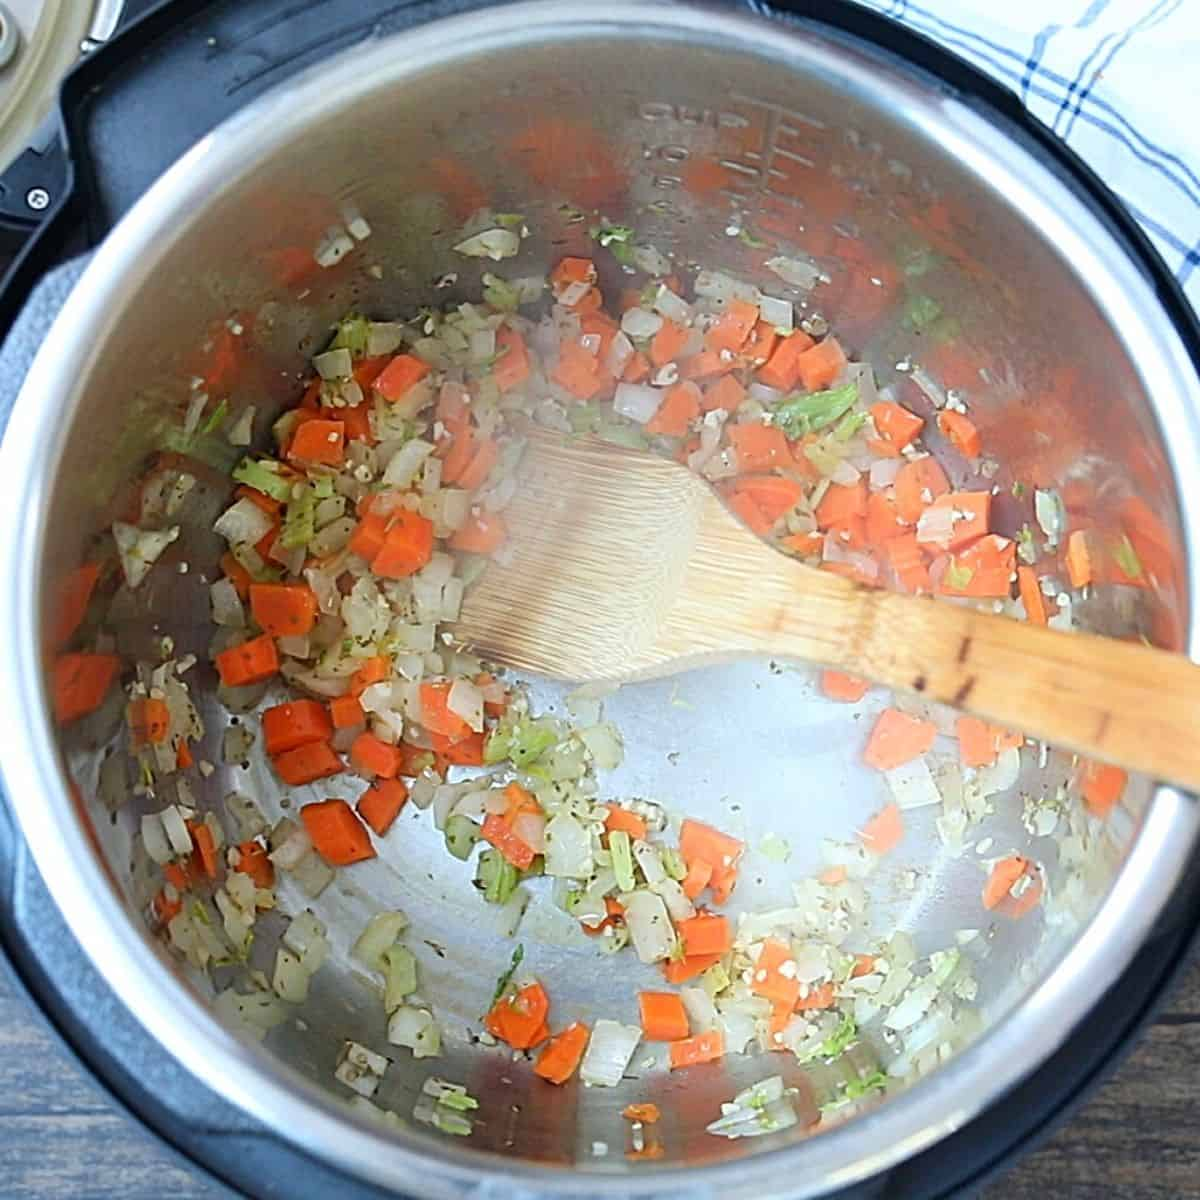 Onions, celery, and carrots sauteed in inner pot of instant pot.